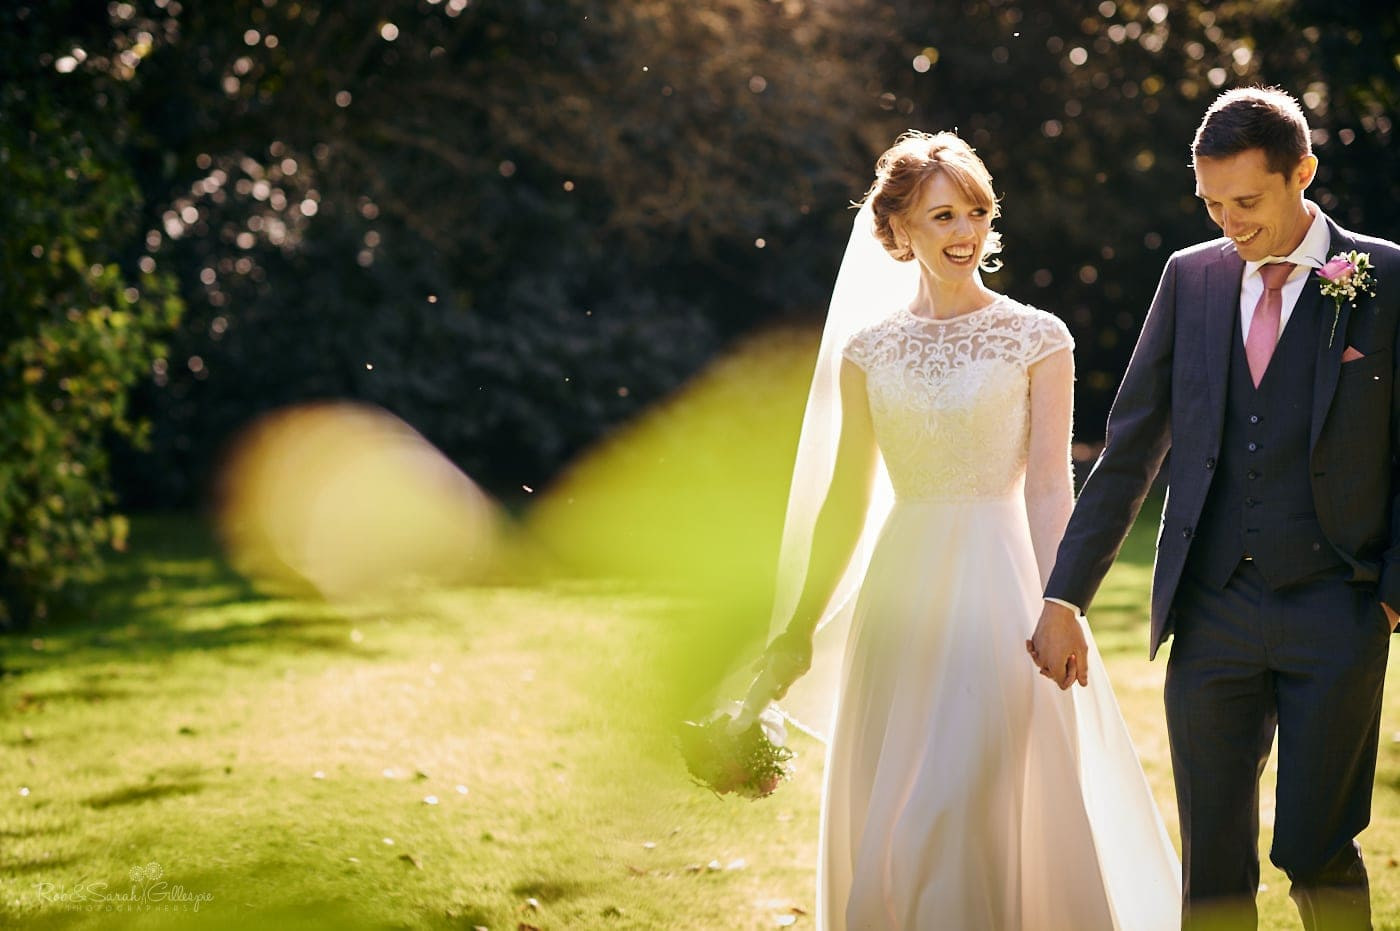 Bride and groom walk through beautiful gardens on sunny day at Pendrell Hall